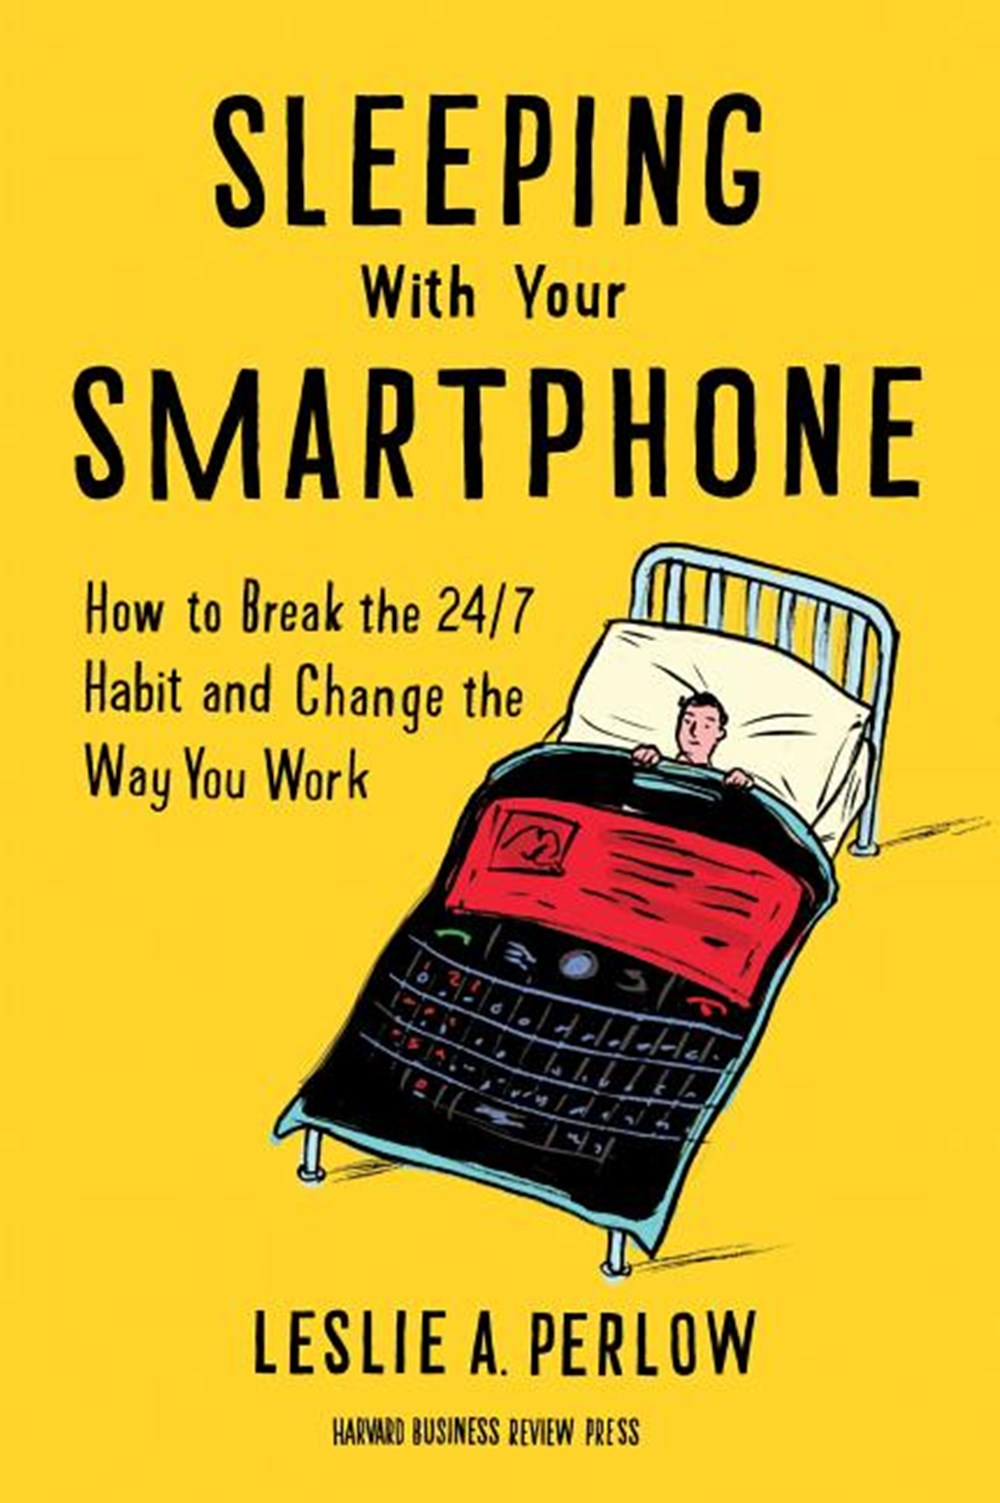 Sleeping with Your Smartphone How to Break the 24/7 Habit and Change the Way You Work